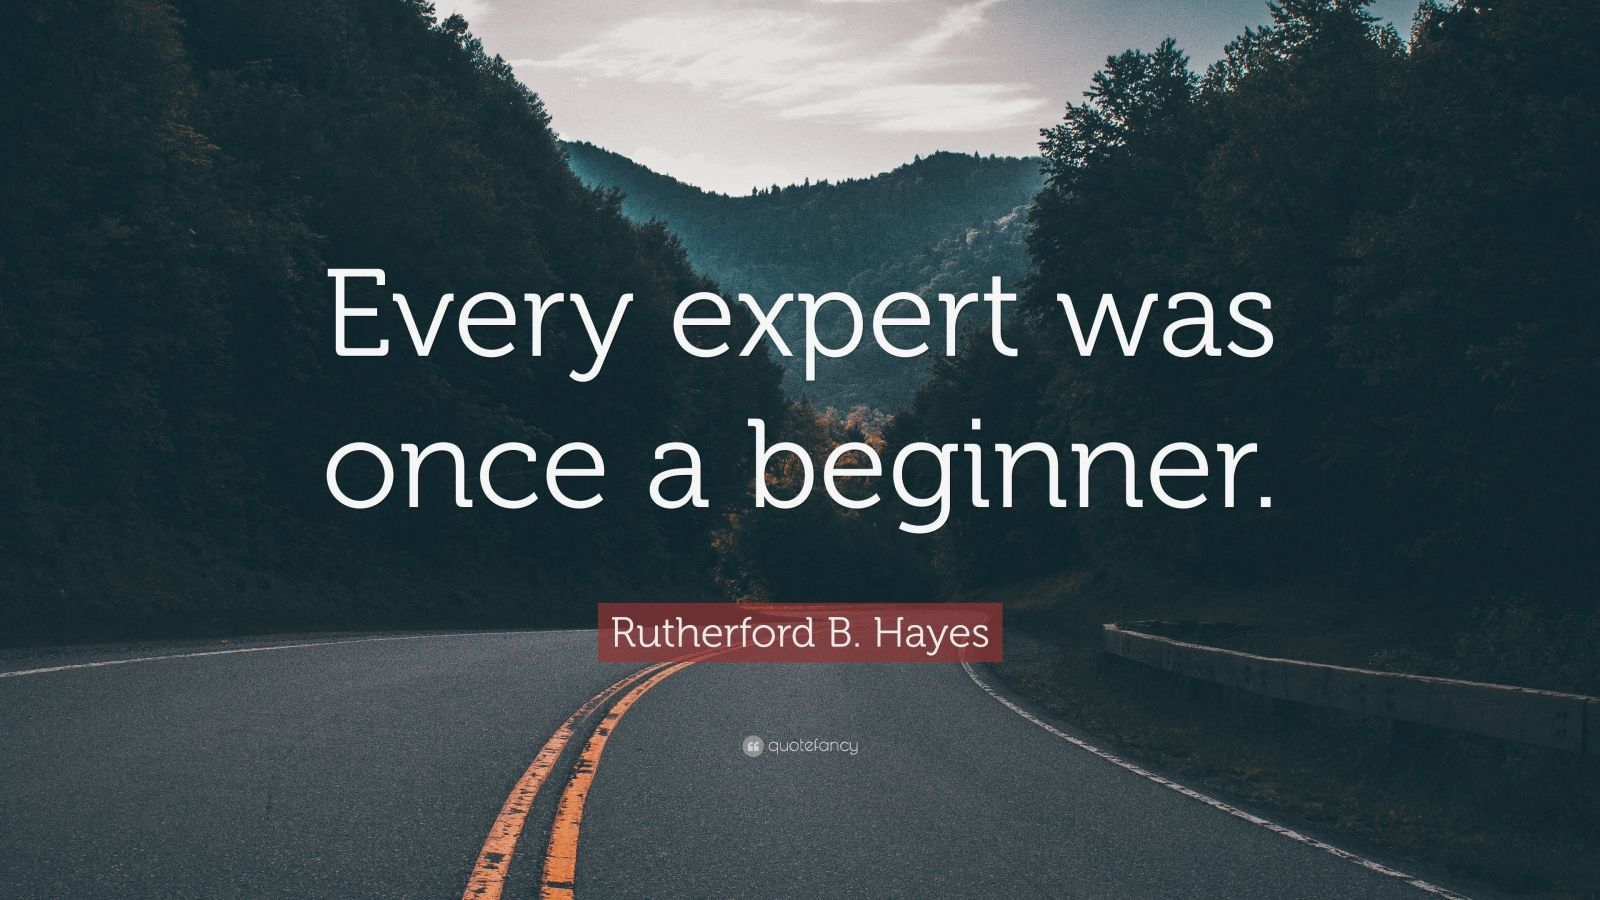 Steve Jobs Wallpaper Quotes Rutherford B Hayes Quote Every Expert Was Once A